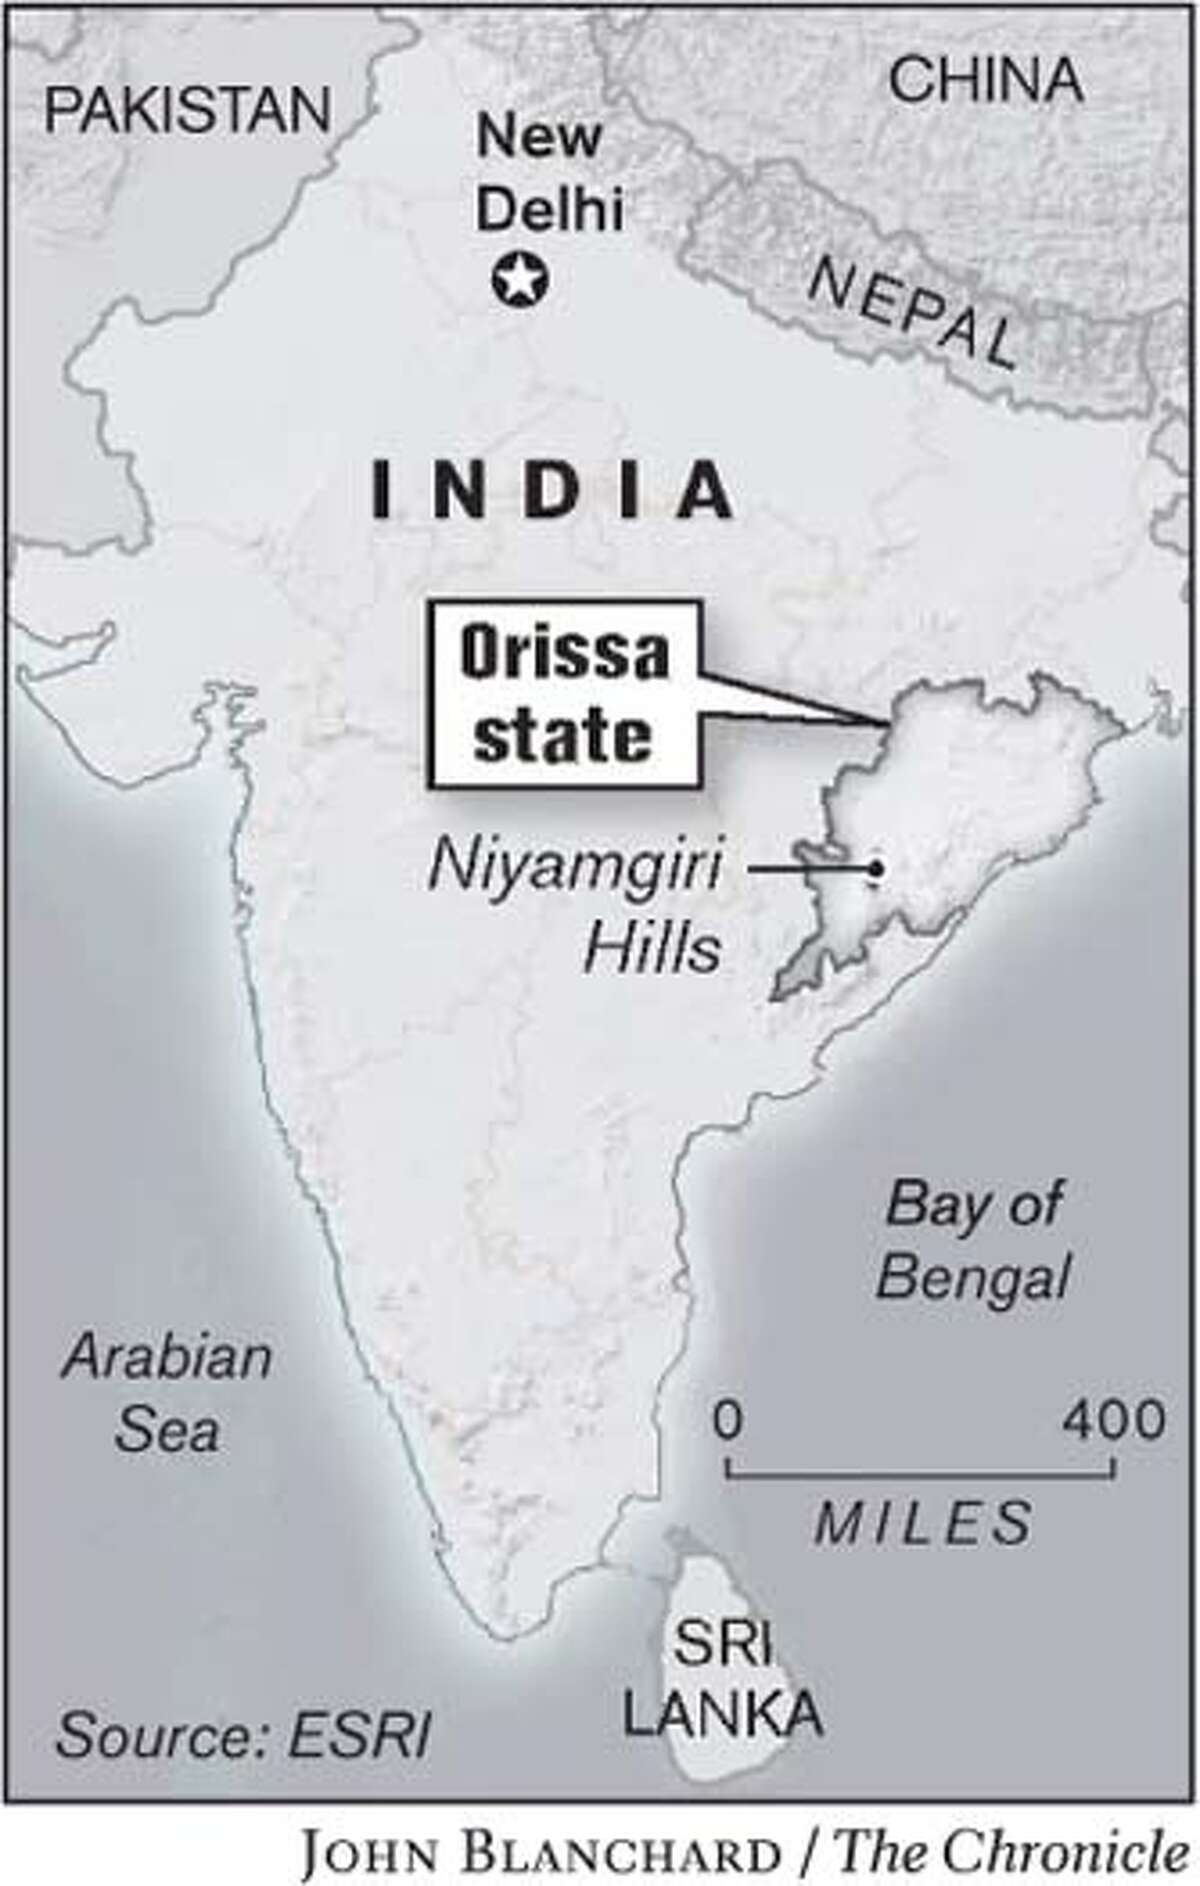 India. Chronicle graphic by John Blanchard